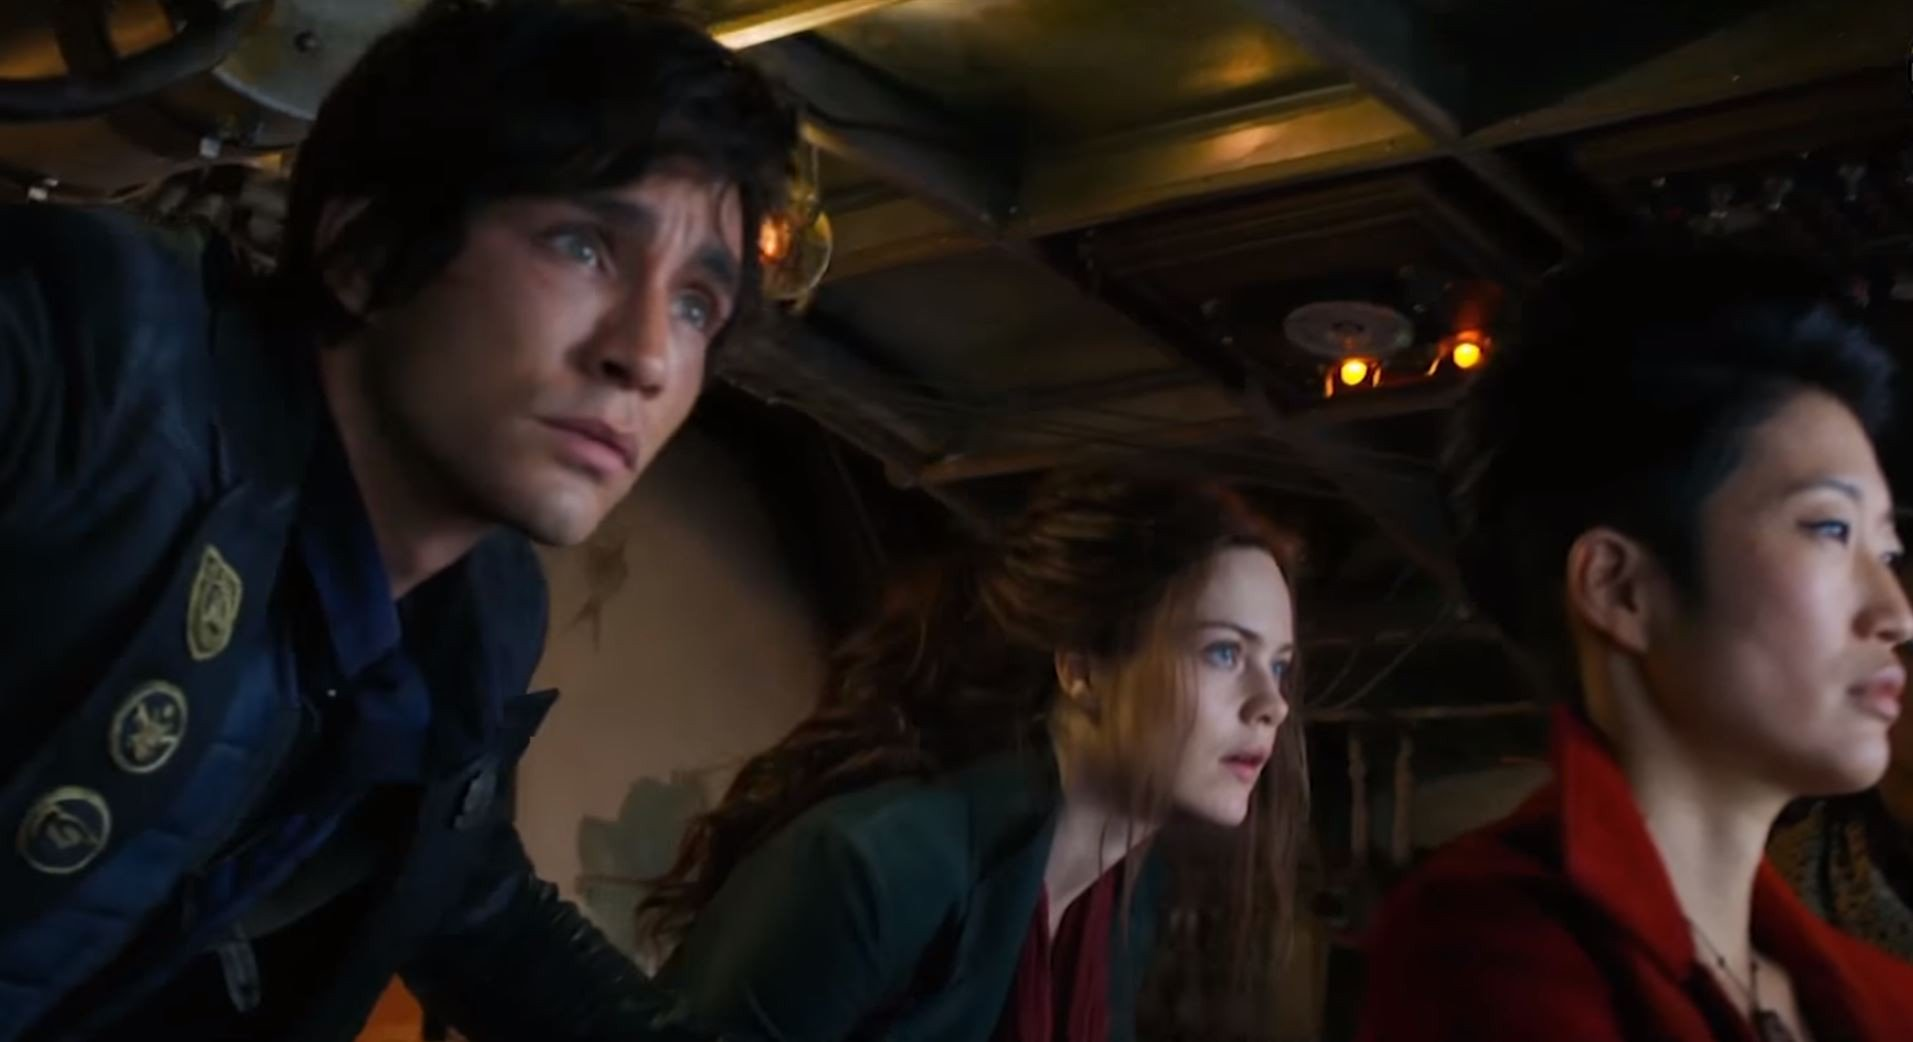 Mortal Engines - Tom Hester and Anna Fang